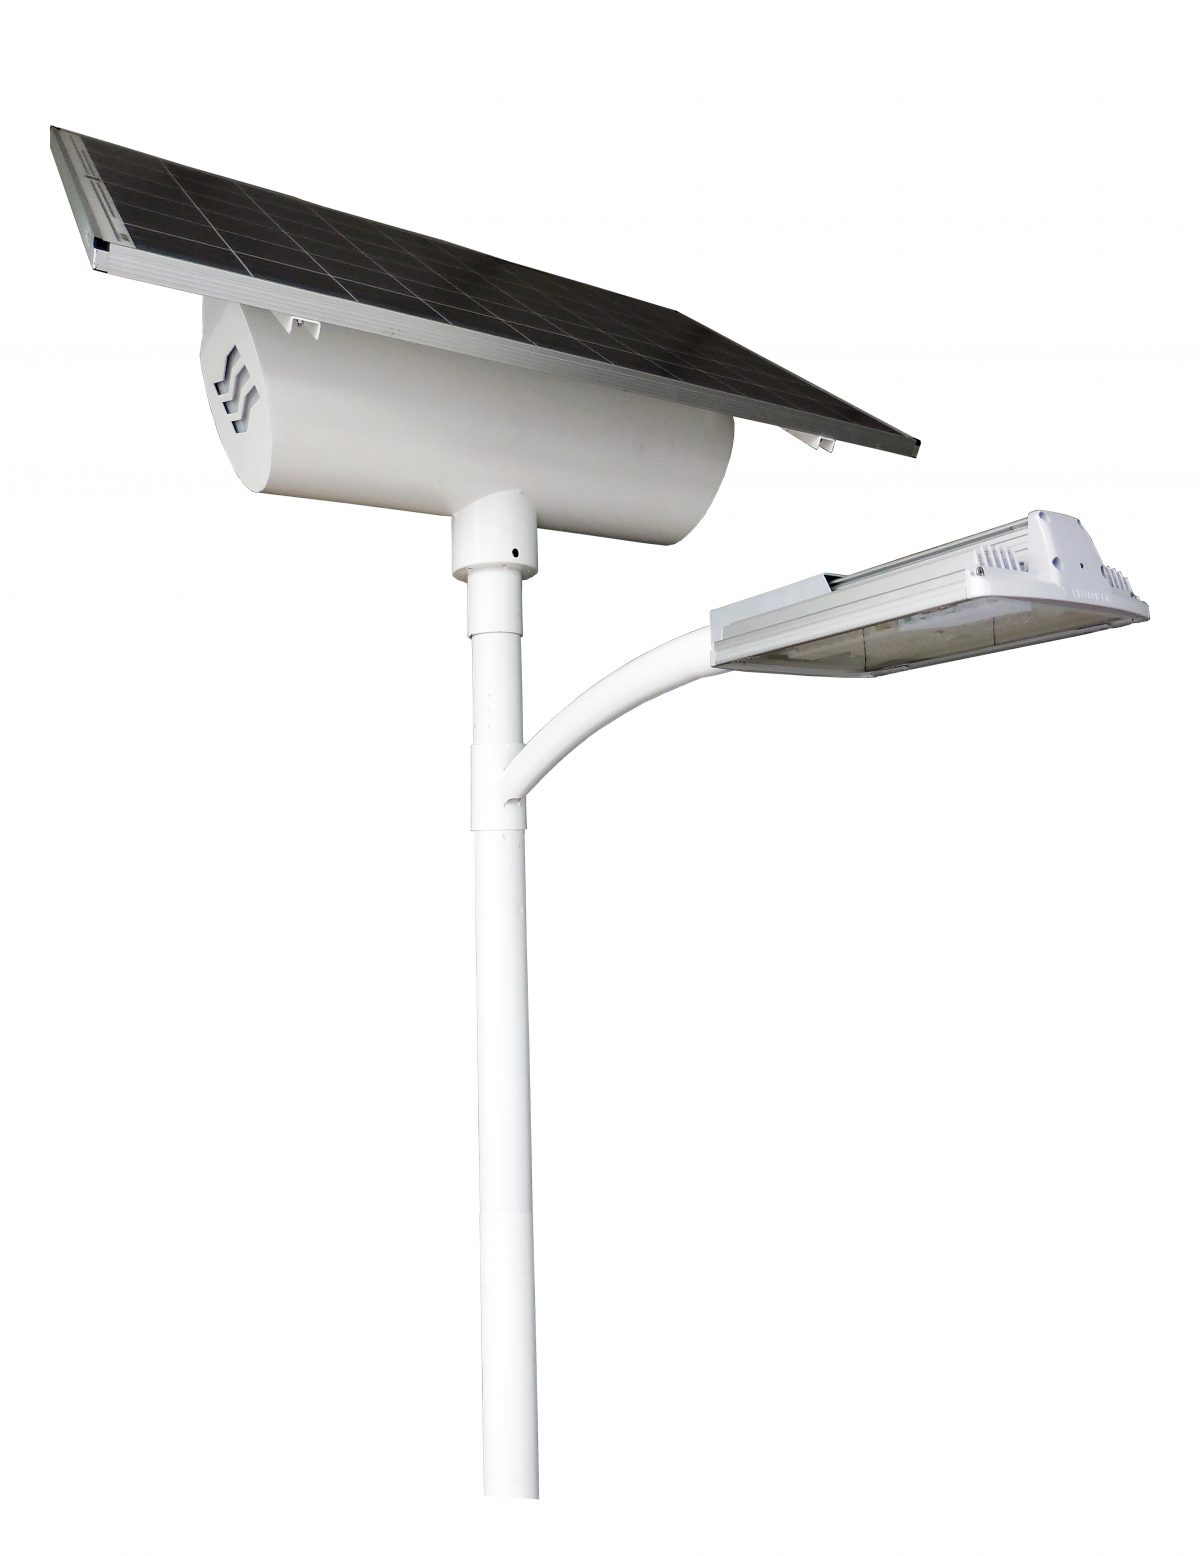 30w multi-directional solar lighting system